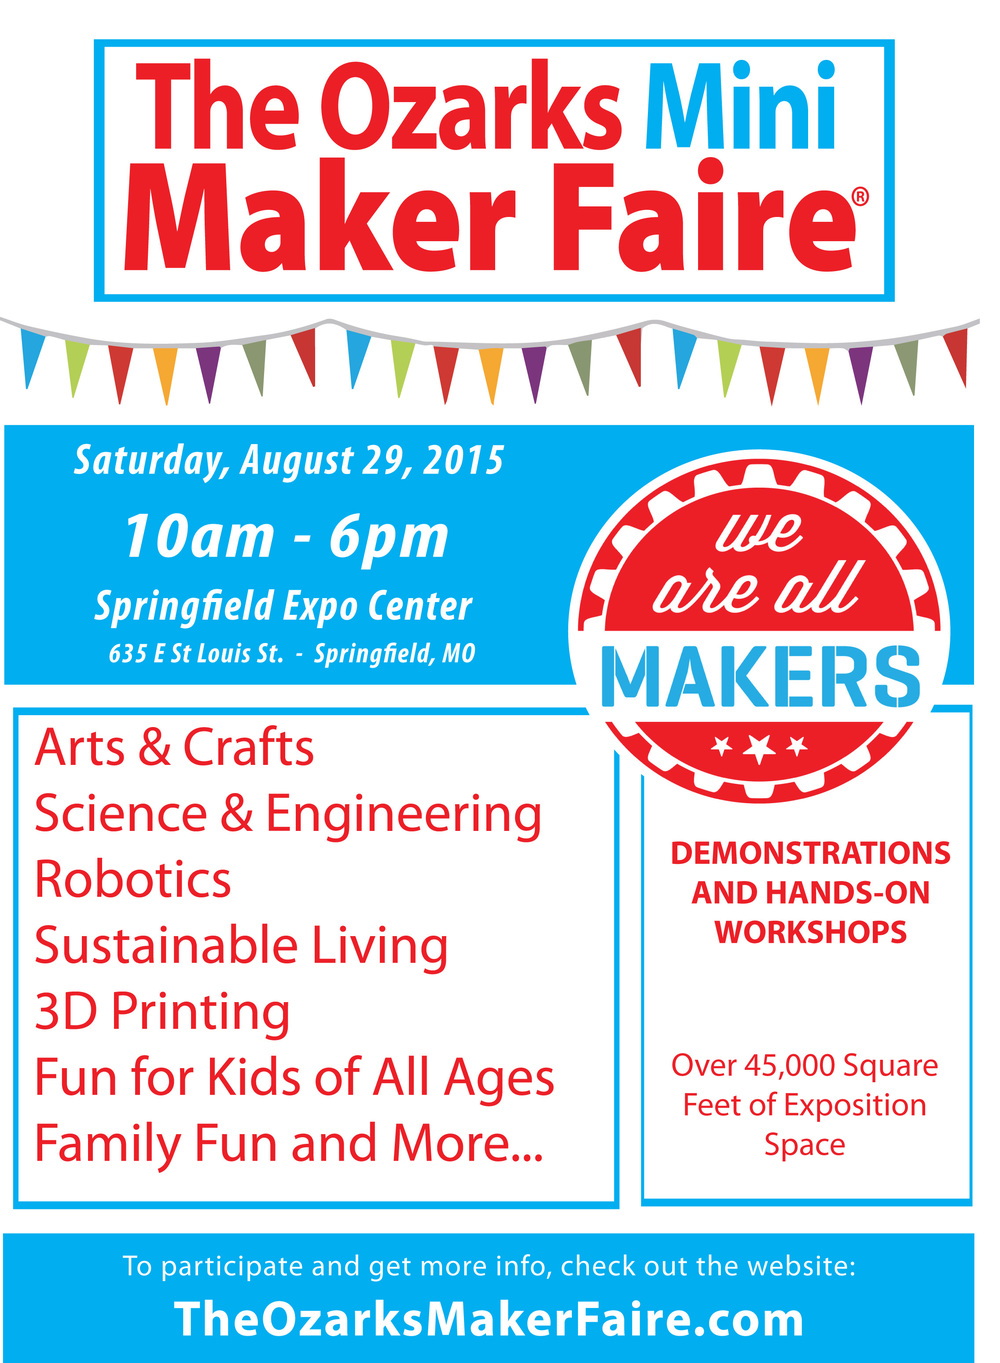 Ozarks Mini Maker Faire | Springfield MO